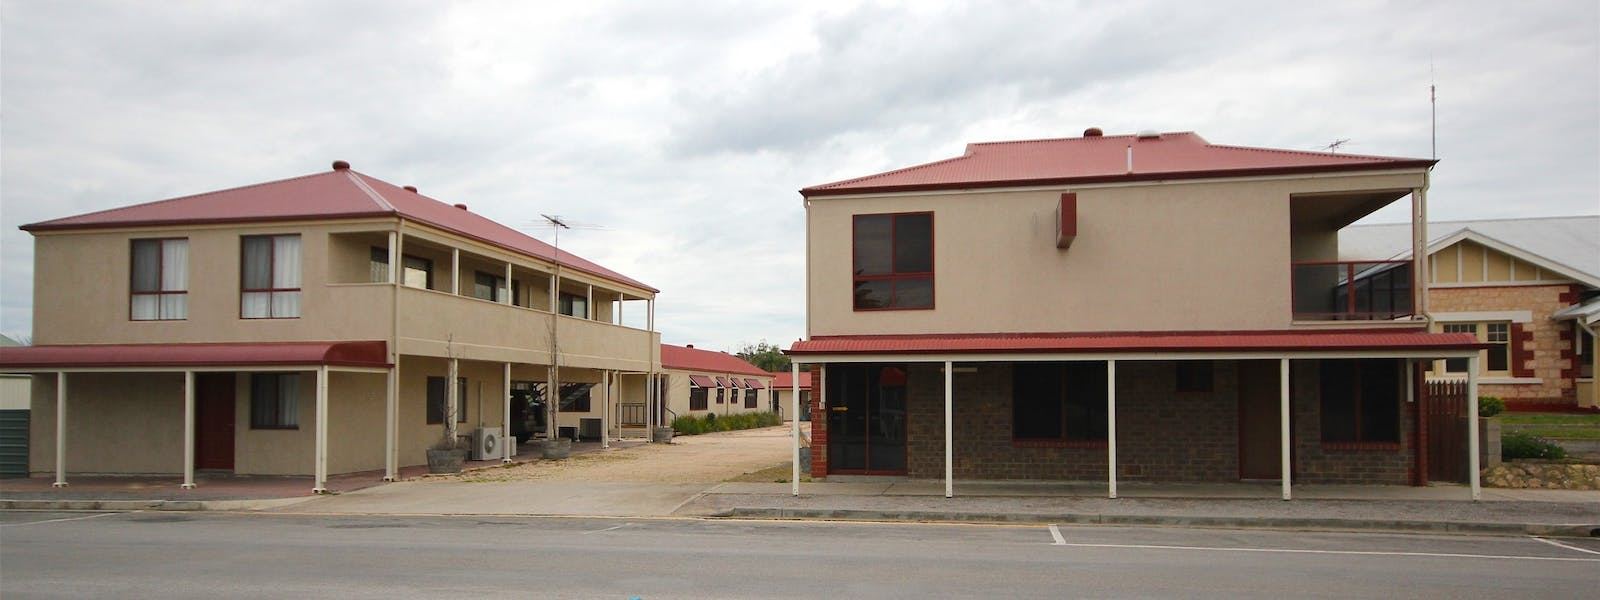 Port Vincent Motel & Apartments Front